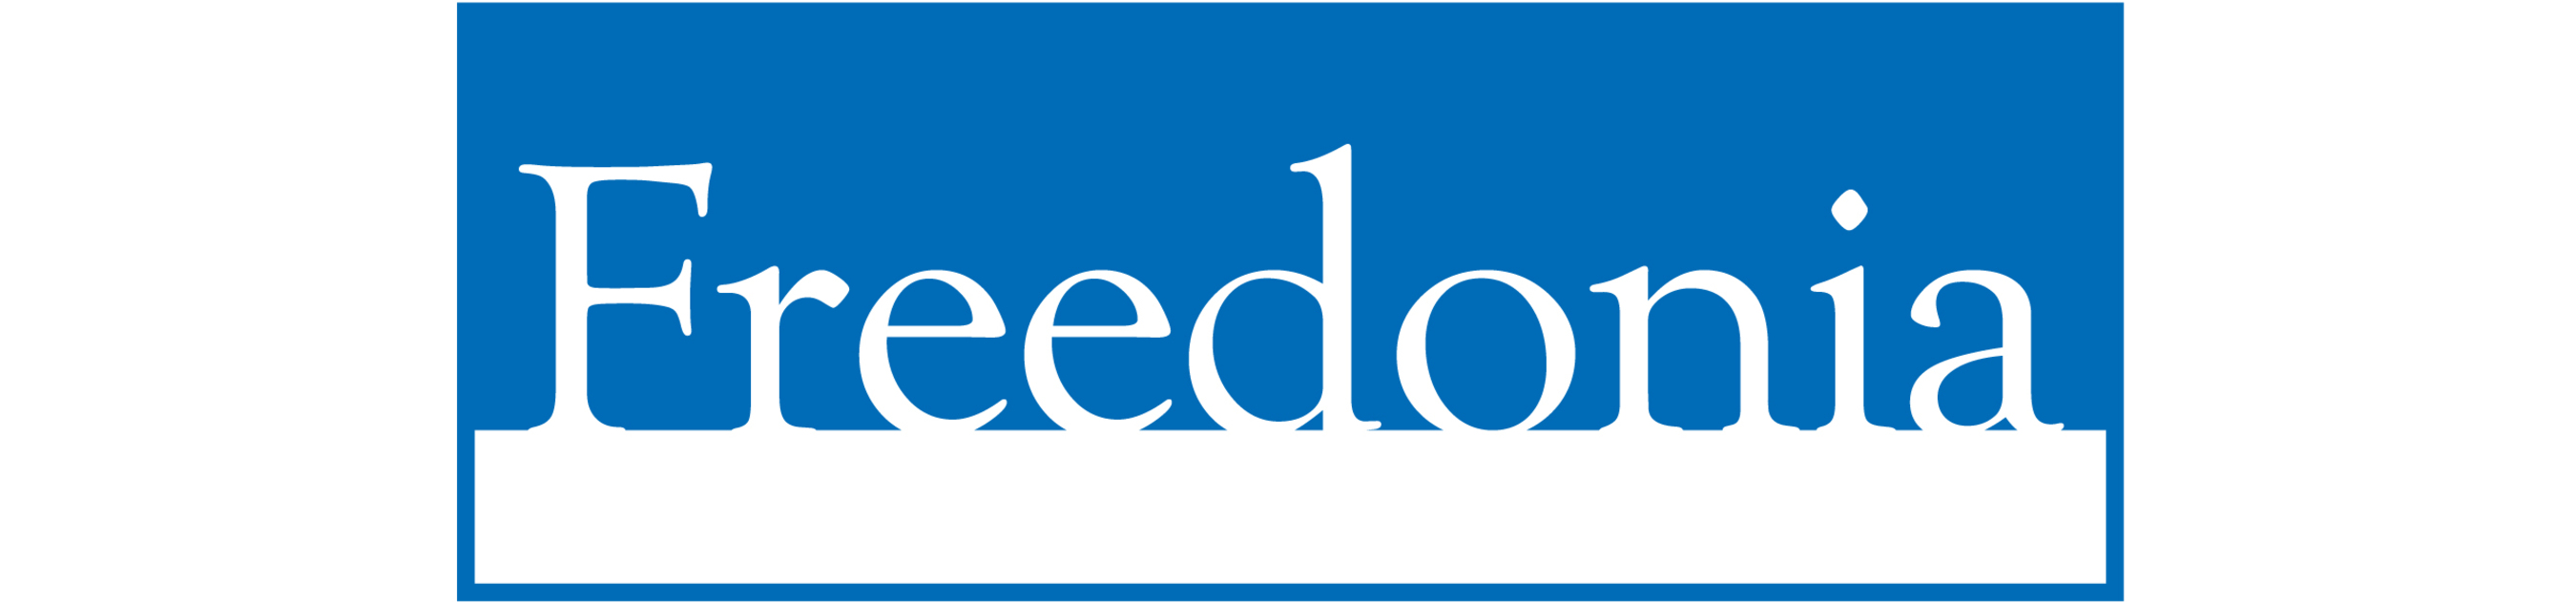 Freedonia Group logo (PRNewsFoto/The Freedonia Group)